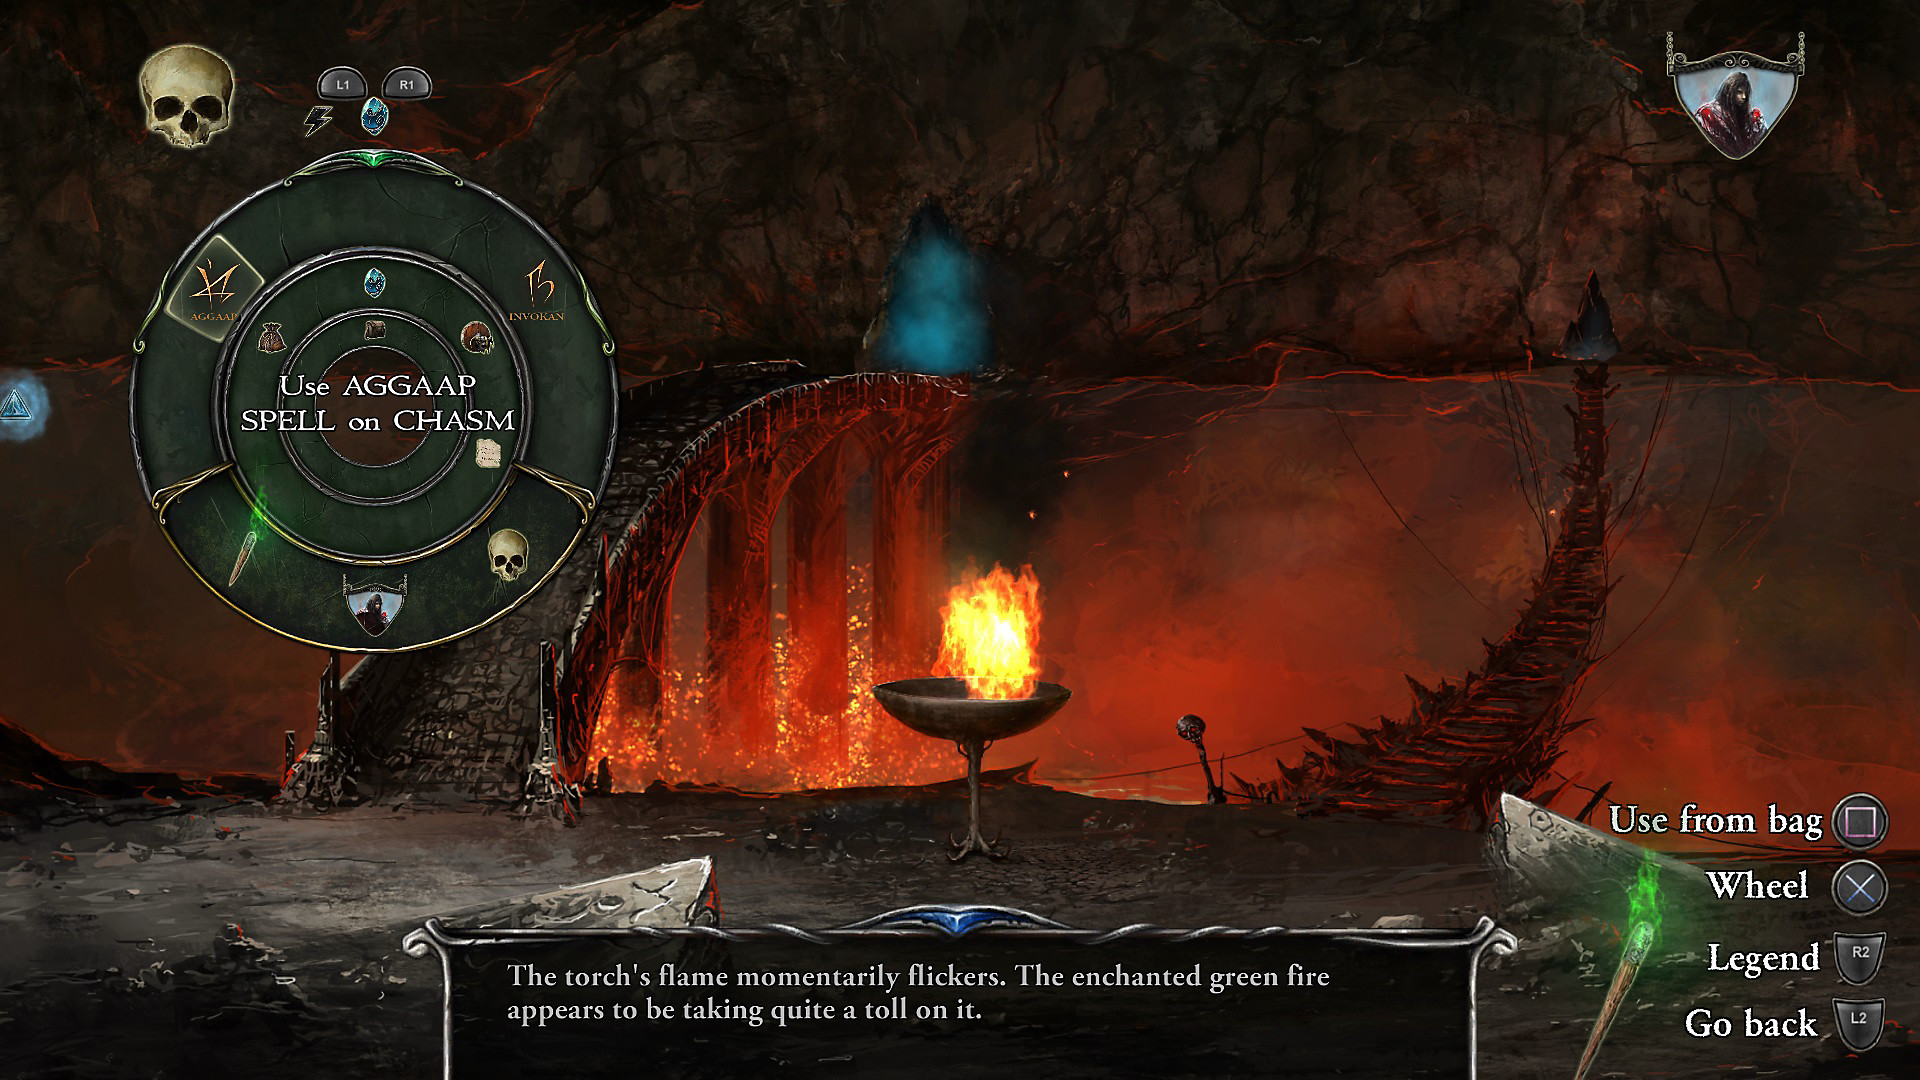 shadowgate-screenshot-04-ps4-us-11apr2019.jpg